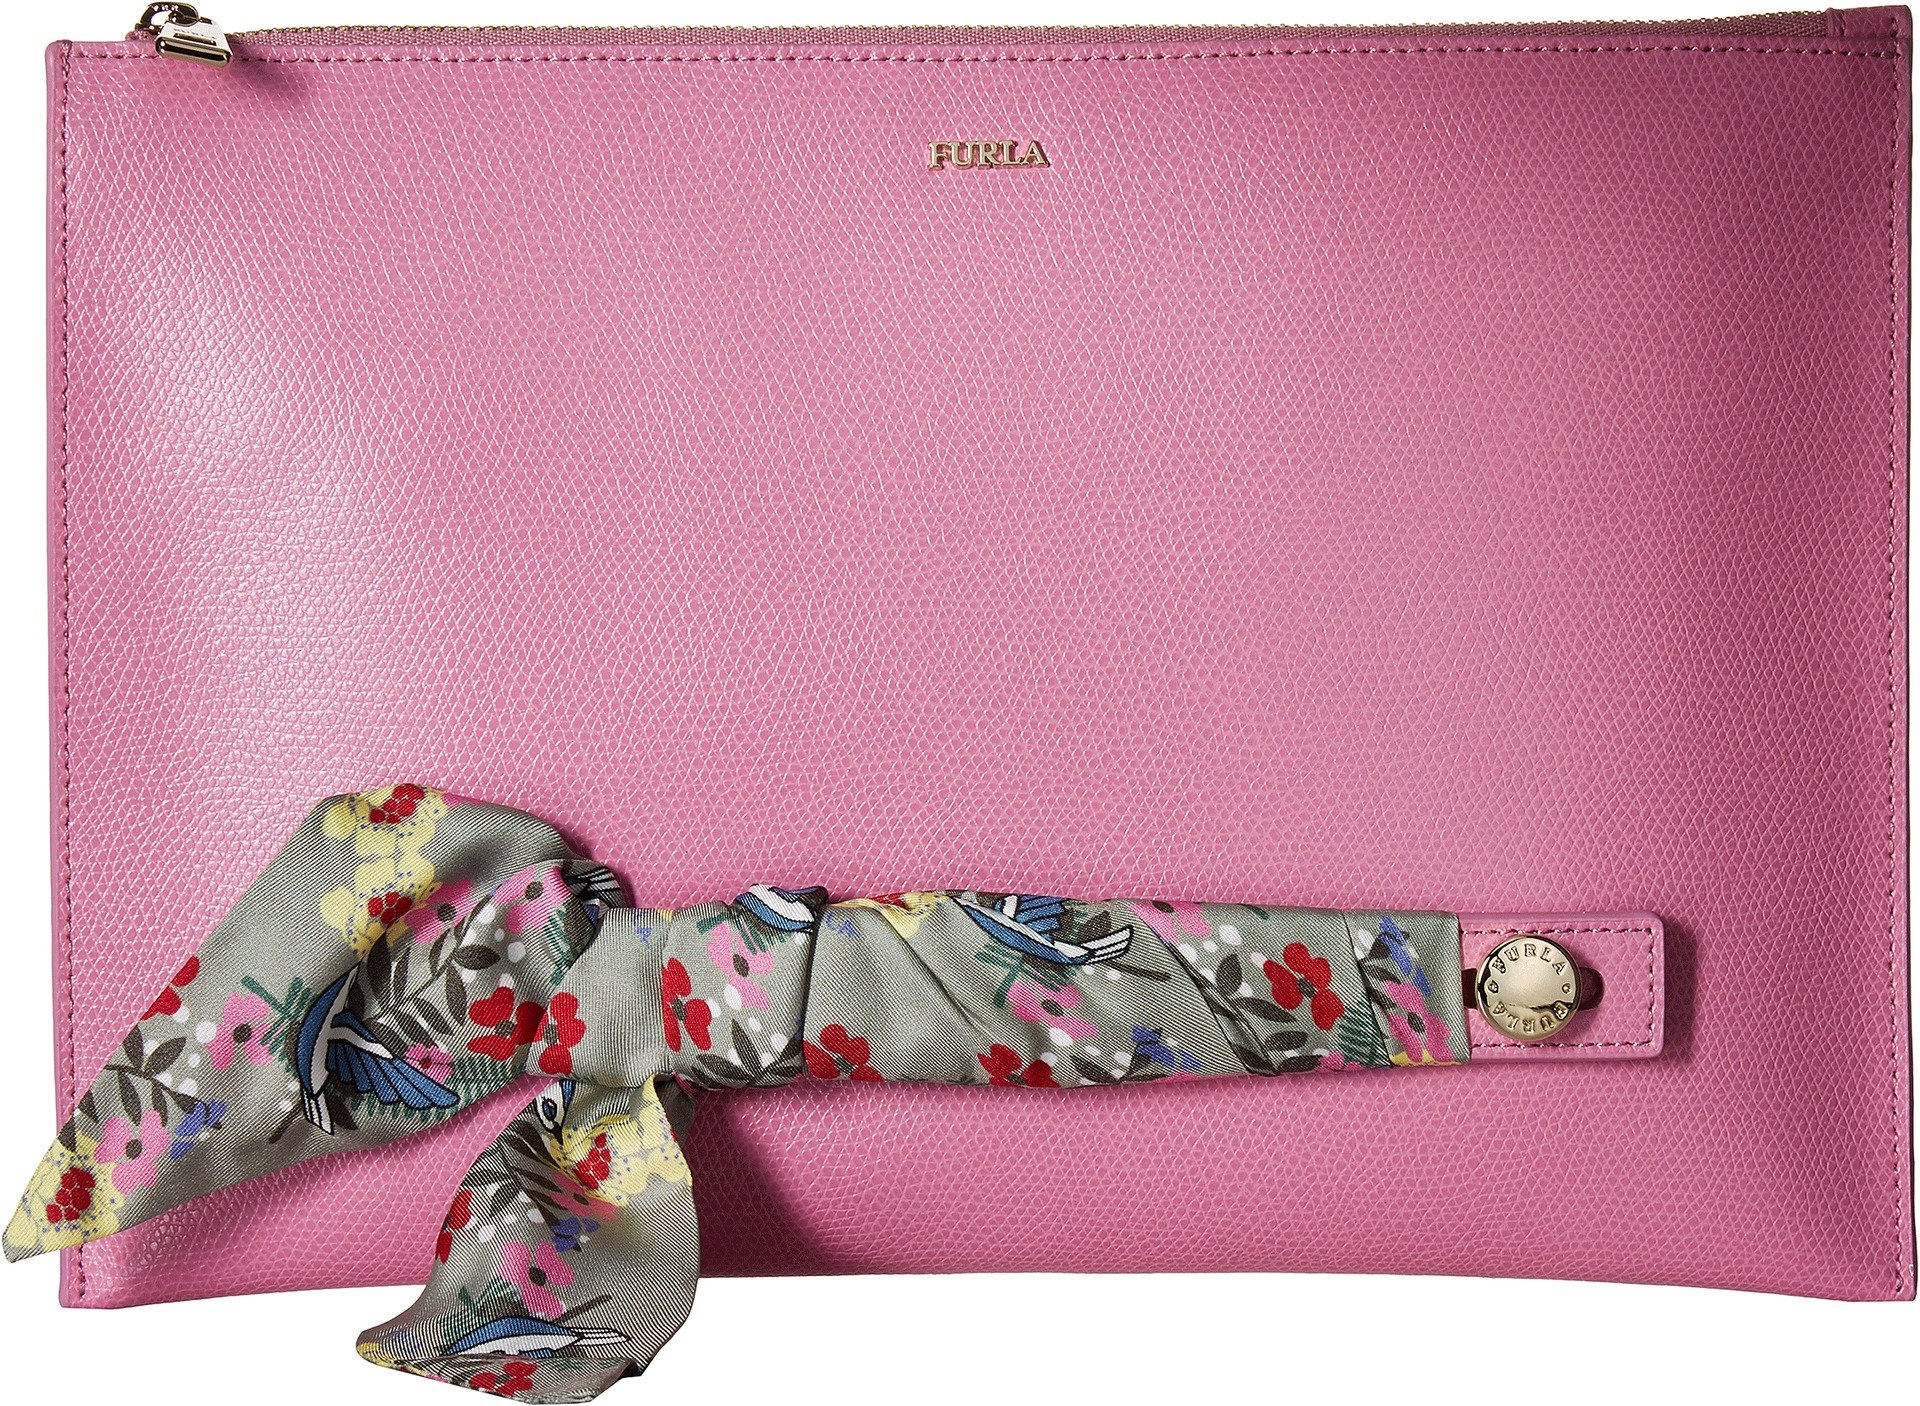 Furla Women's Babylon XL Envelope, Orchidea/Toni Sabbia, One Size